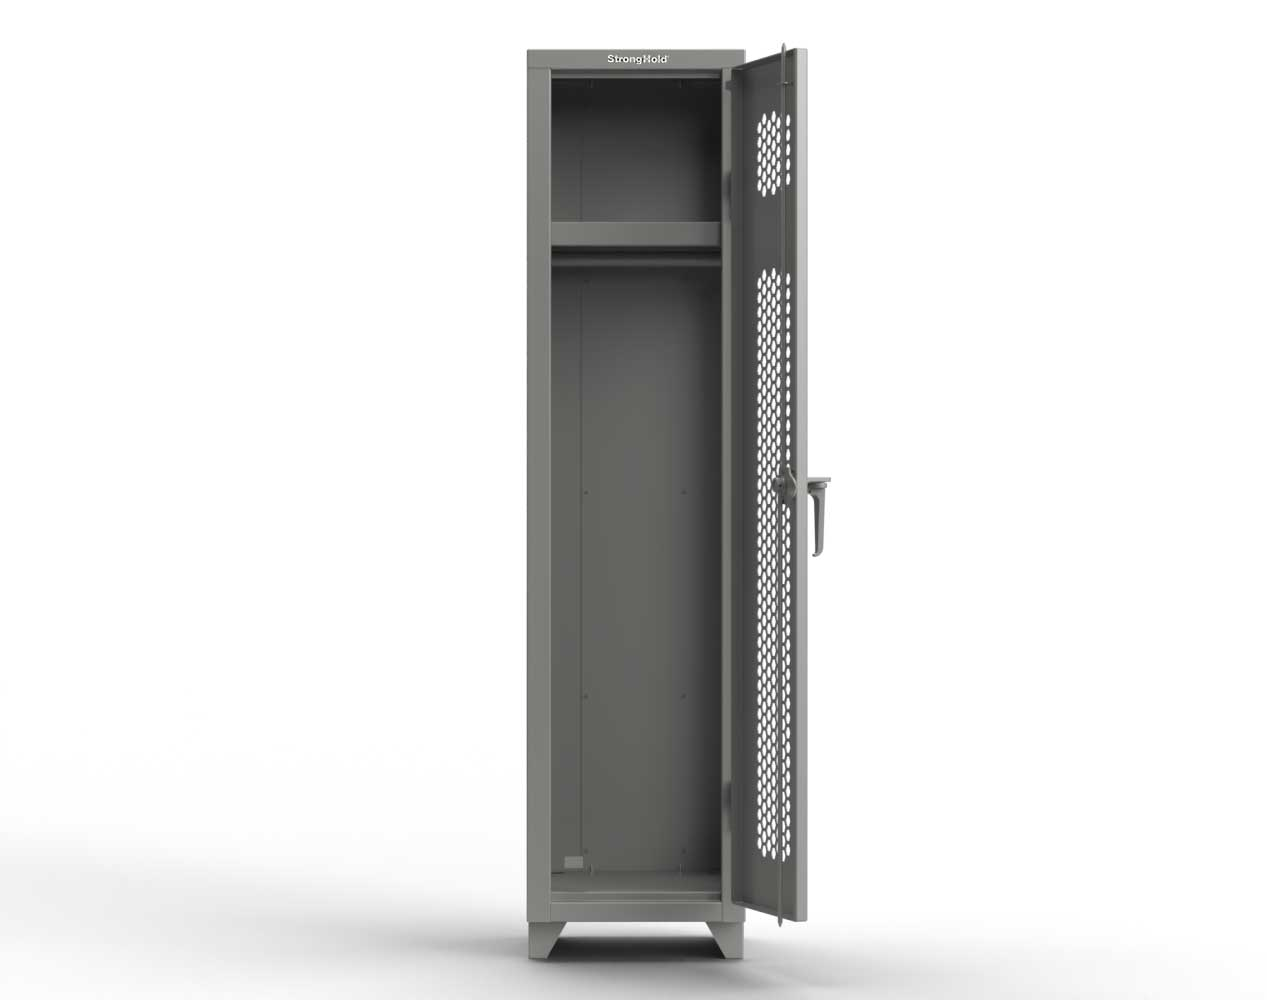 Extra Heavy Duty 14 GA Ventilated Single-Tier Locker with Shelf and Hanger Rod, 1 Compartment – 18 in. W x 18 in. D x 75 in. H